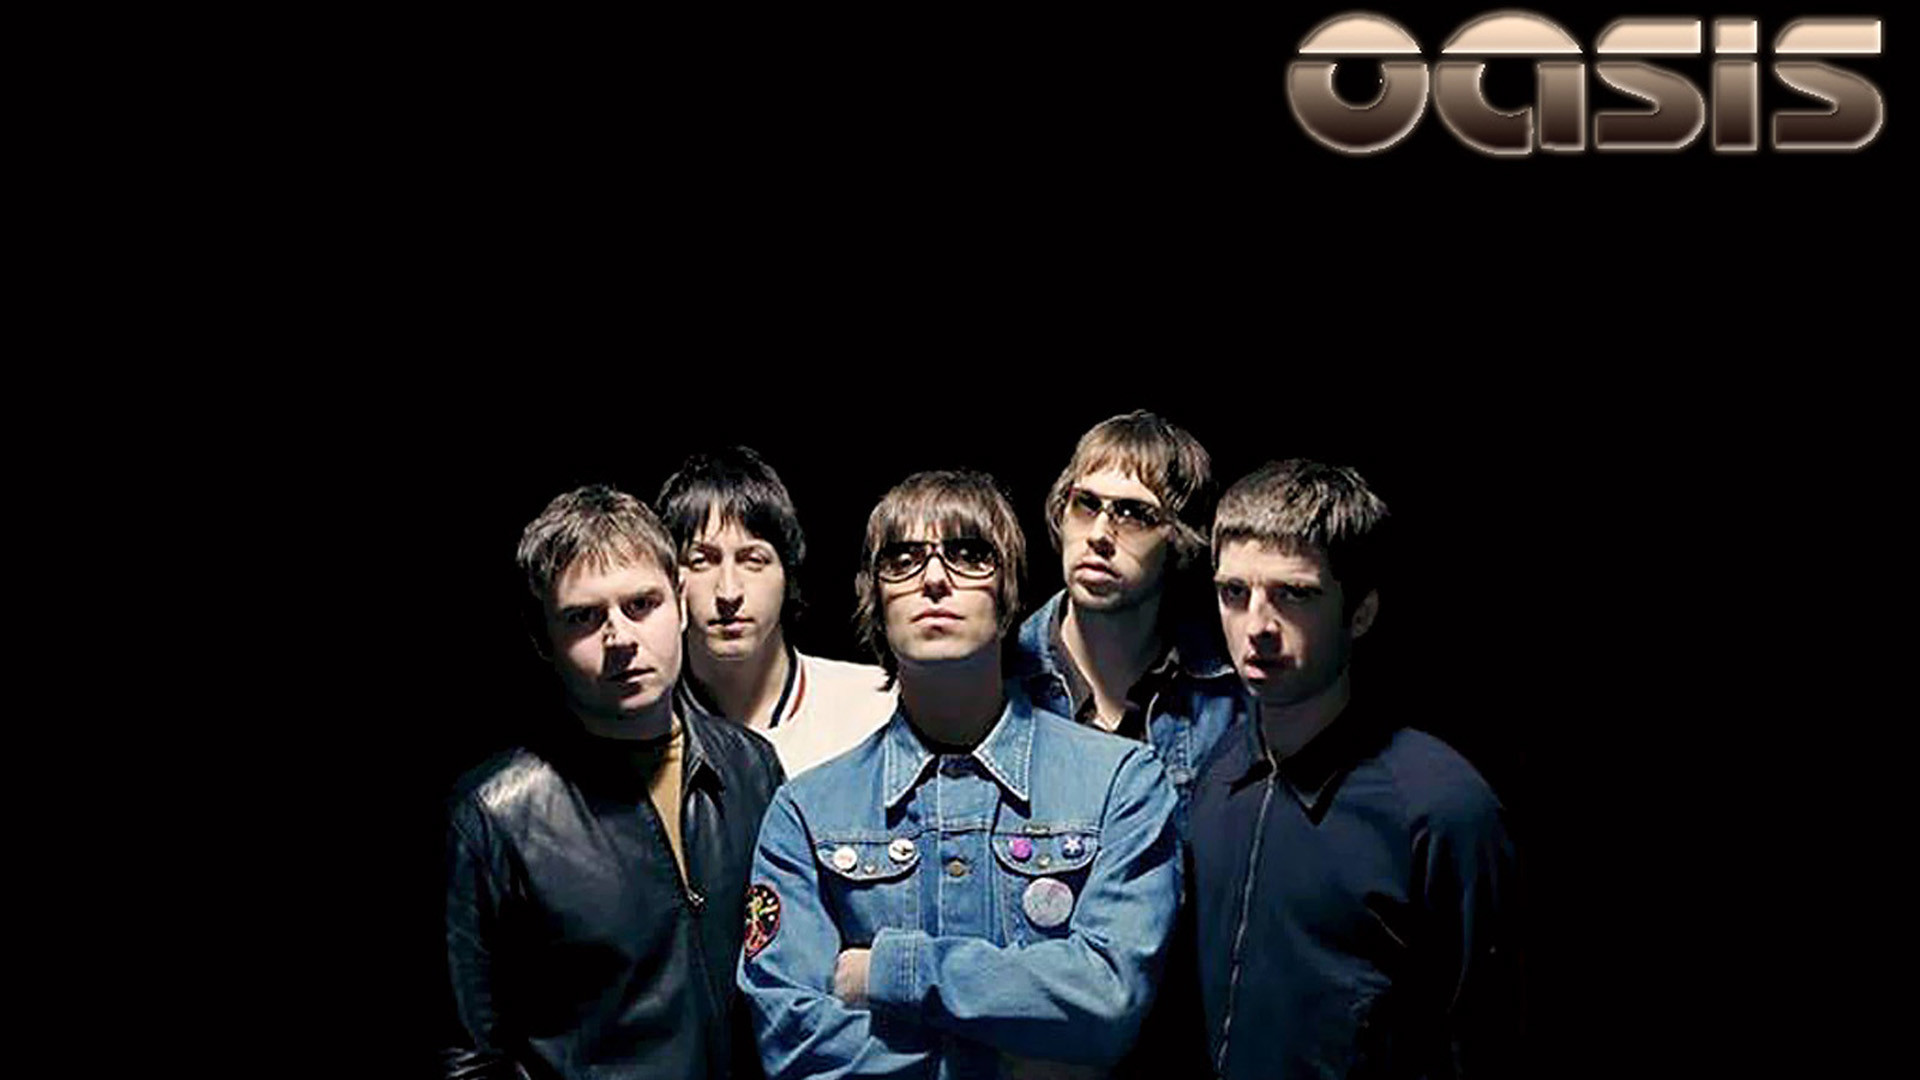 Oasis Wallpaper (59+ images) Oasis Band Wallpaper